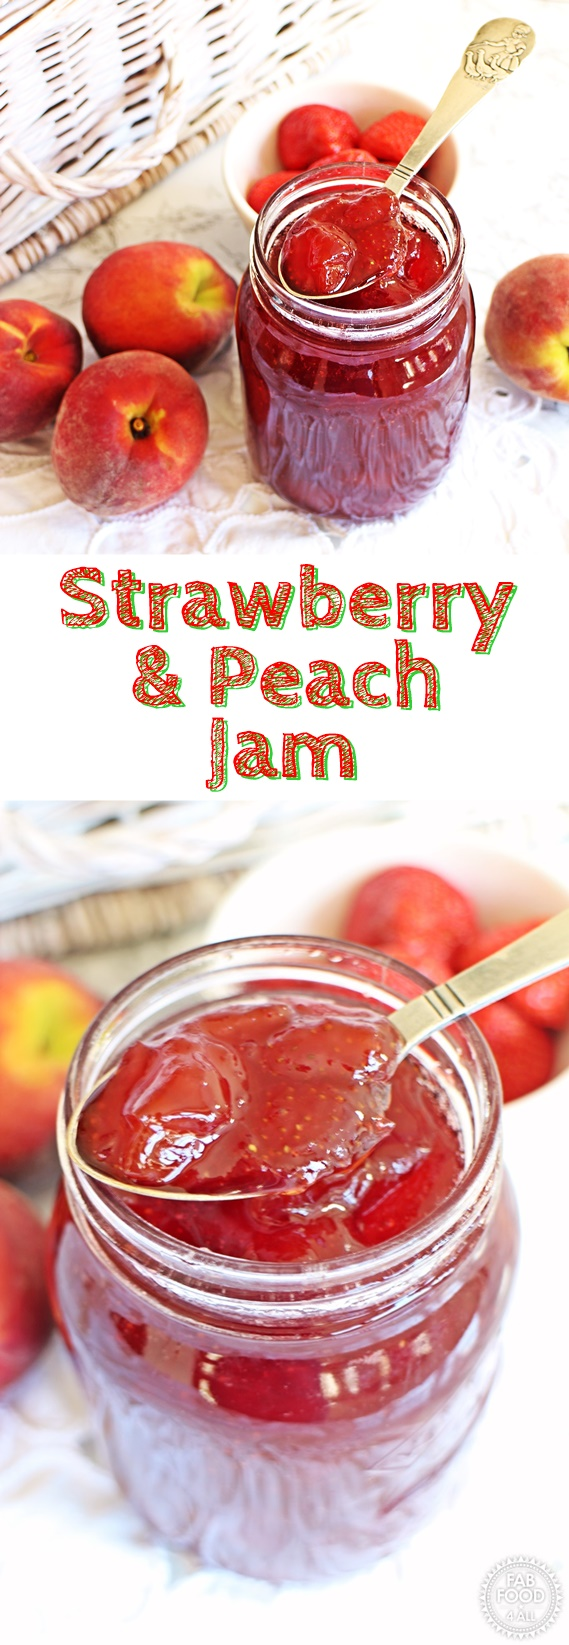 Strawberry & Peach Jam - Fab Food 4 All